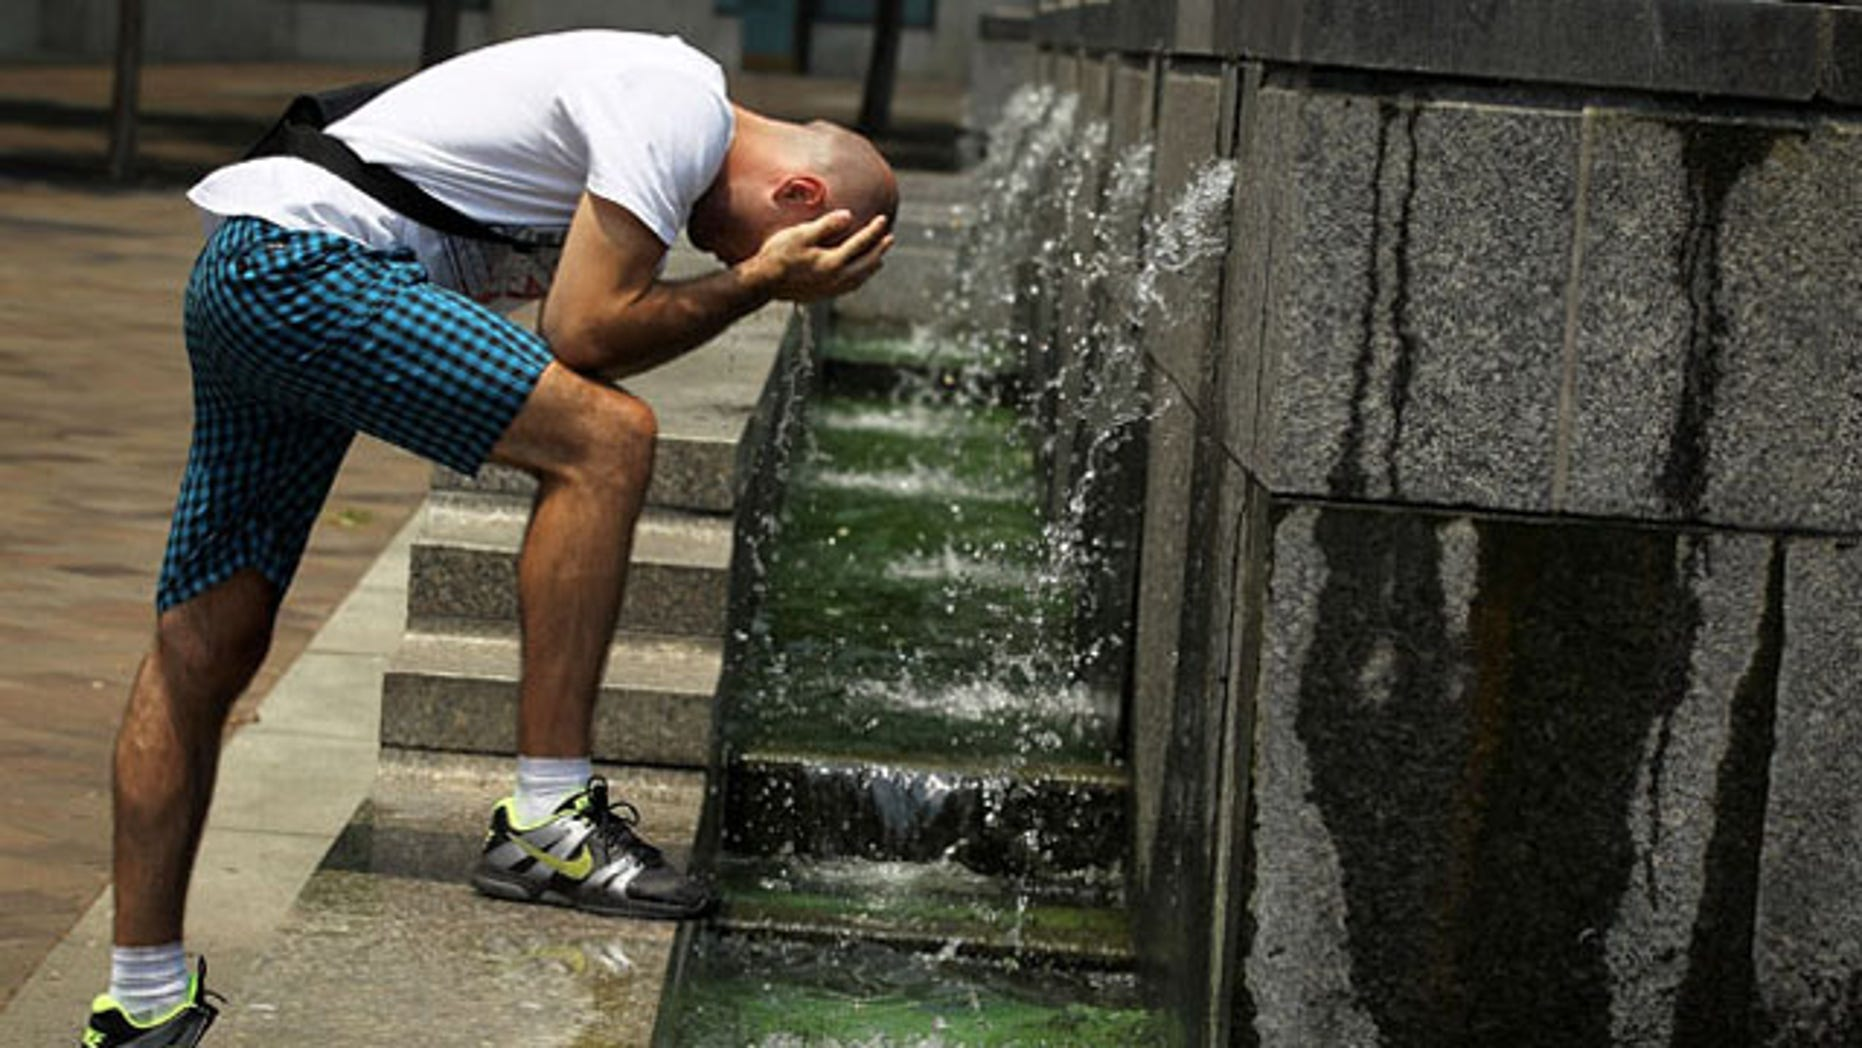 WASHINGTON, DC - JUNE 22:  Alexandar Zivkovic of Belgrade, Serbia, cools himself off at the fountain of the U.S. Navy Memorial June 22, 2012 in Washington, DC. Weather forecast predicted the area is heading towards a cooler weekend.  (Photo by Alex Wong/Getty Images)